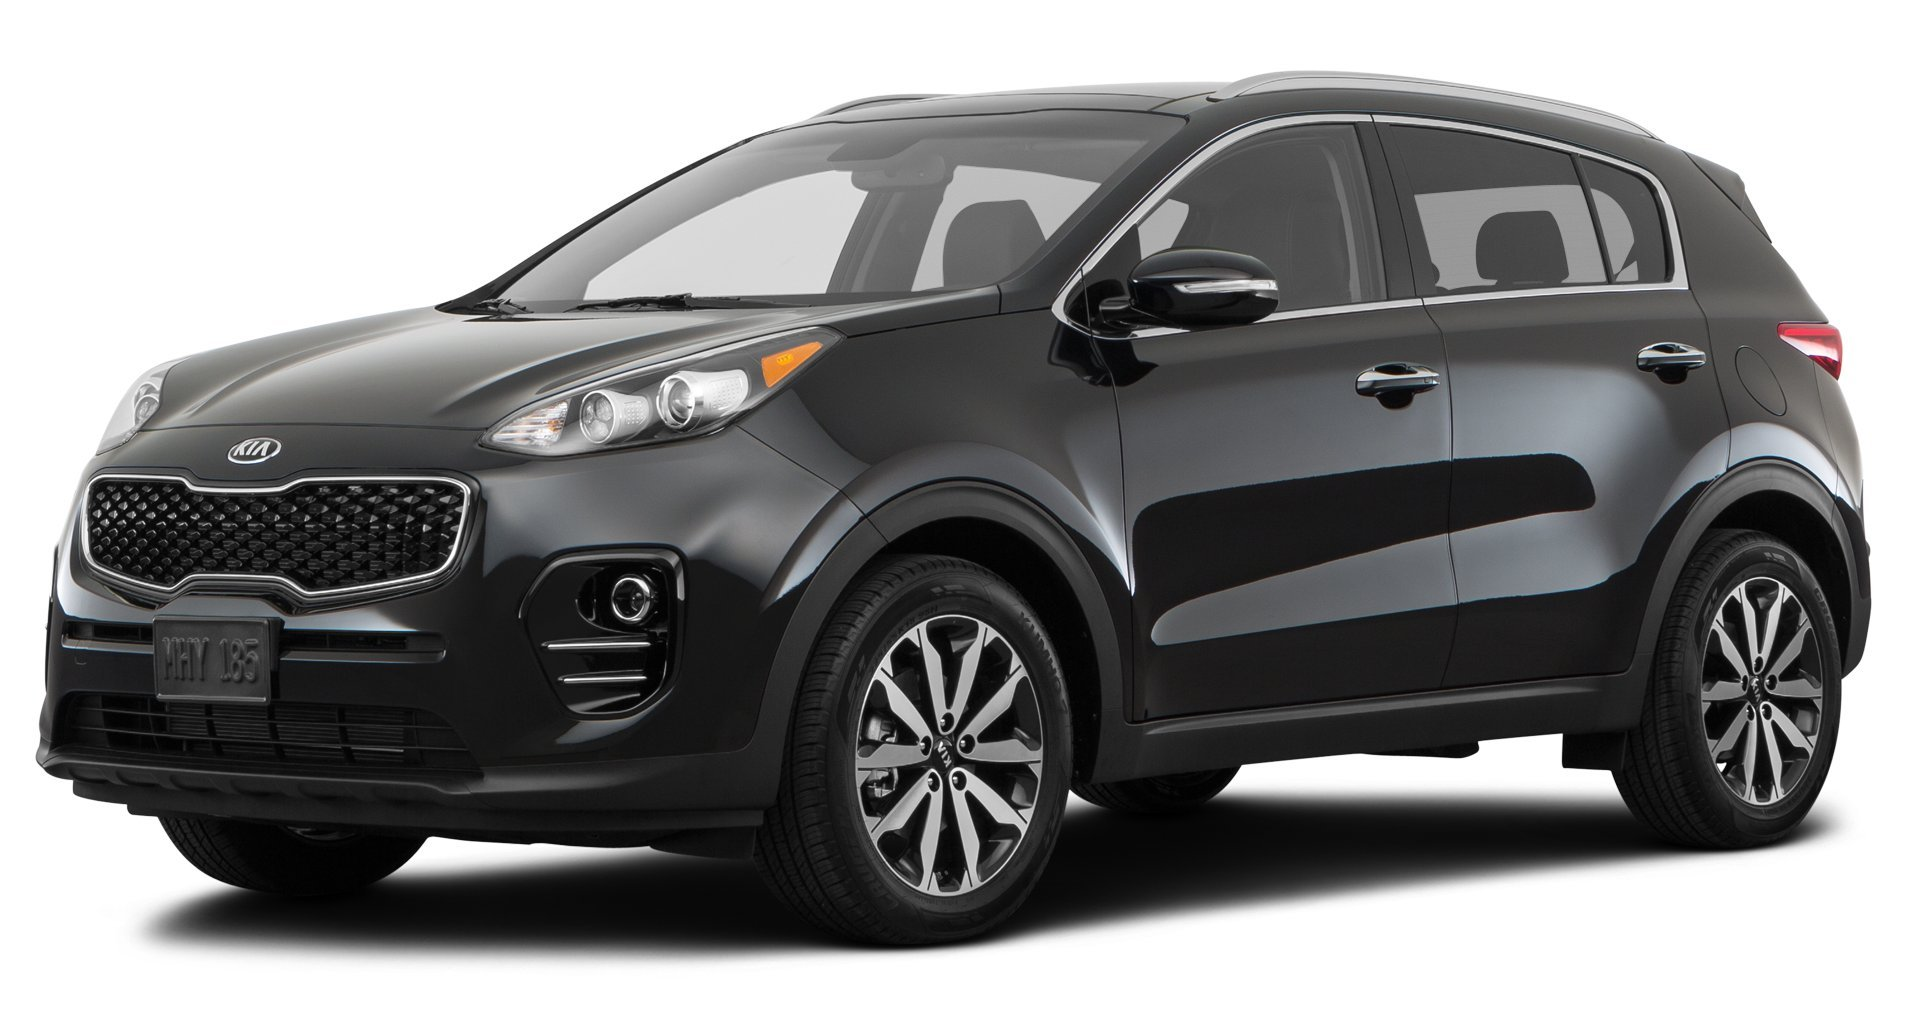 2017 kia sportage reviews images and specs vehicles. Black Bedroom Furniture Sets. Home Design Ideas